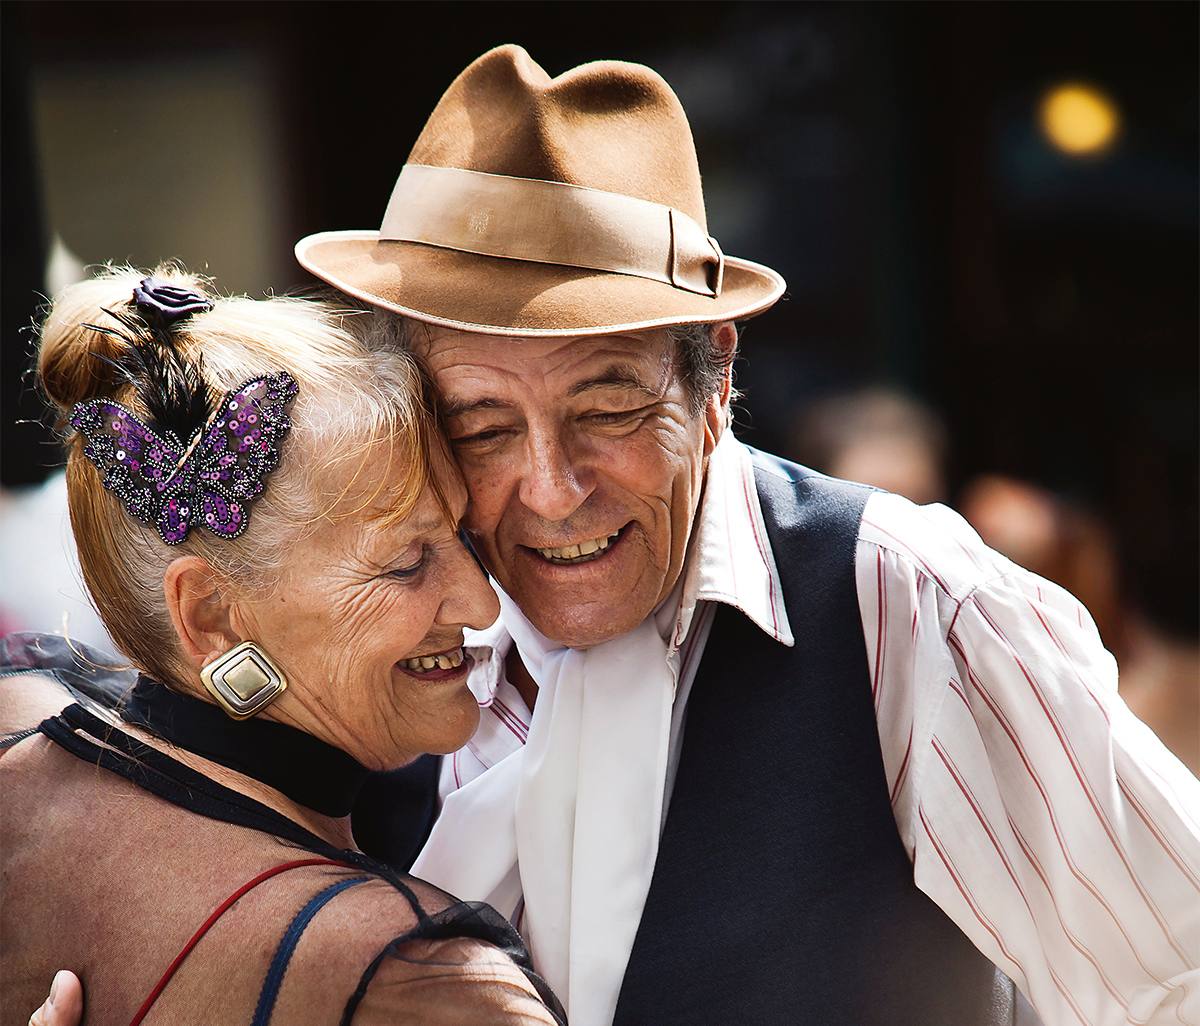 Dancing the tango in San Telmo, Buenos Aires